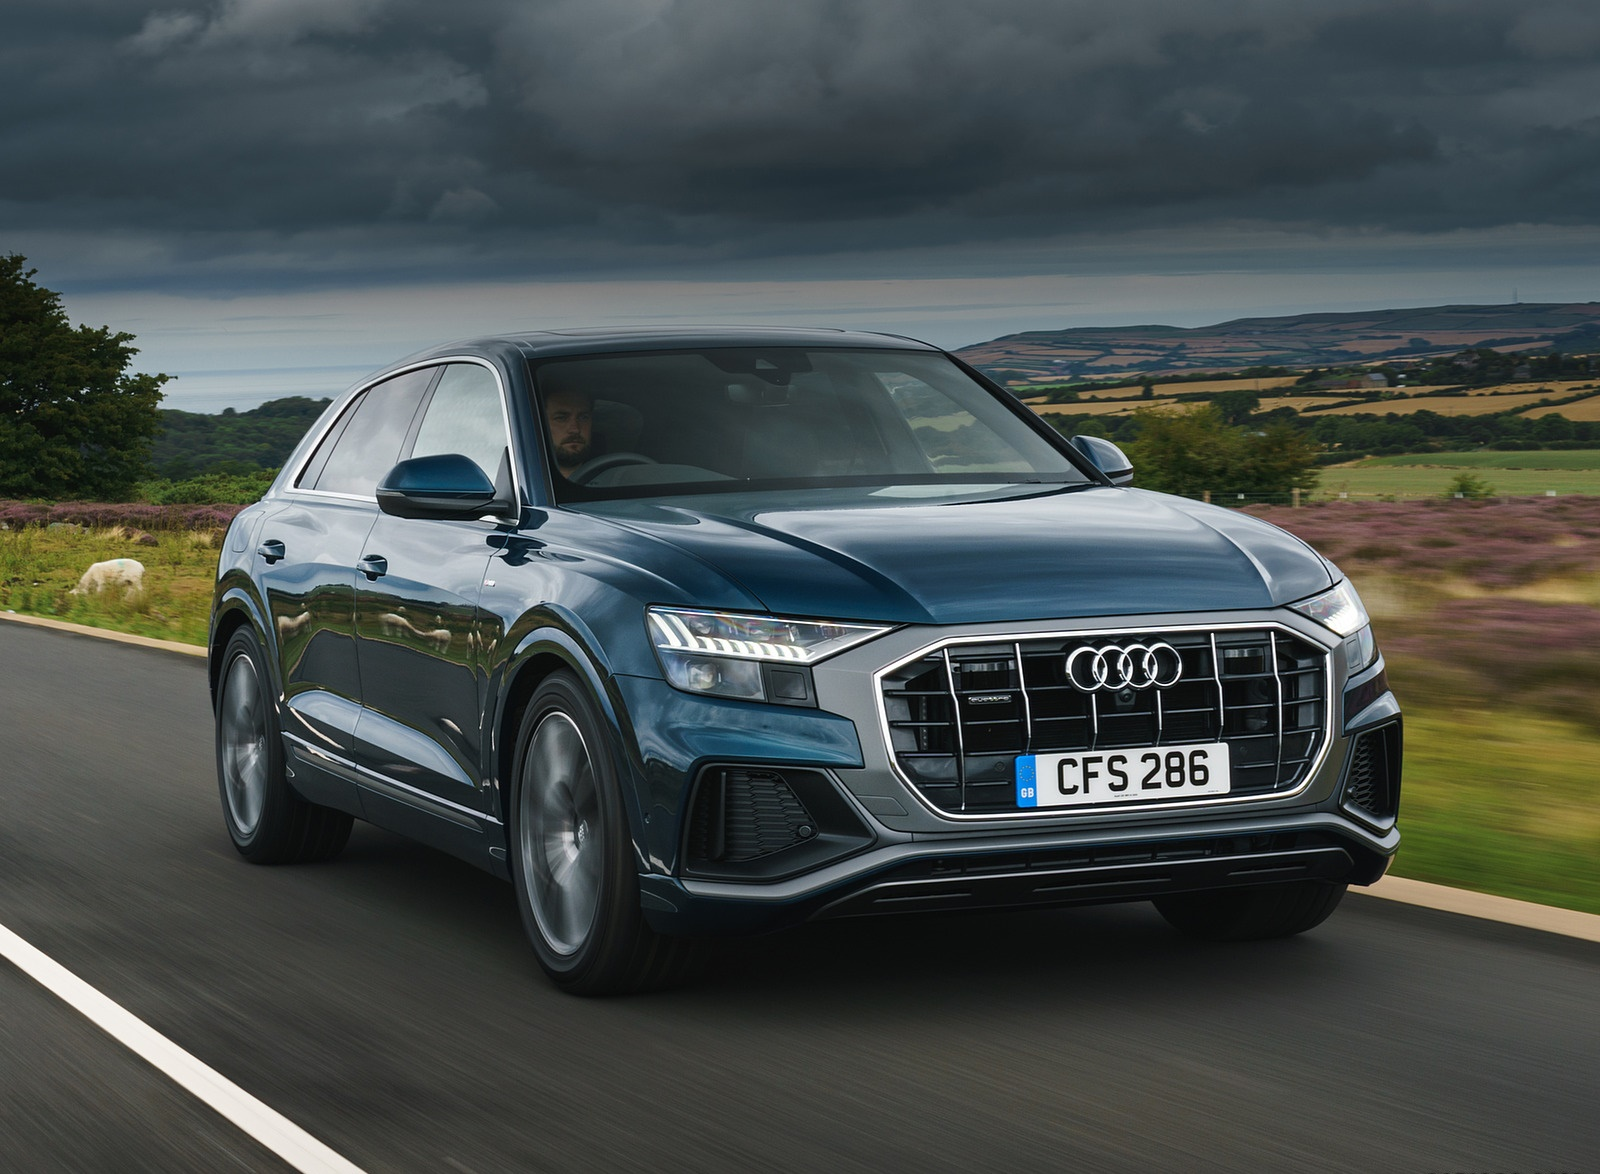 2019 Audi Q8 S Line 50 TDI Quattro (UK-Spec) Front Three-Quarter Wallpaper (2)